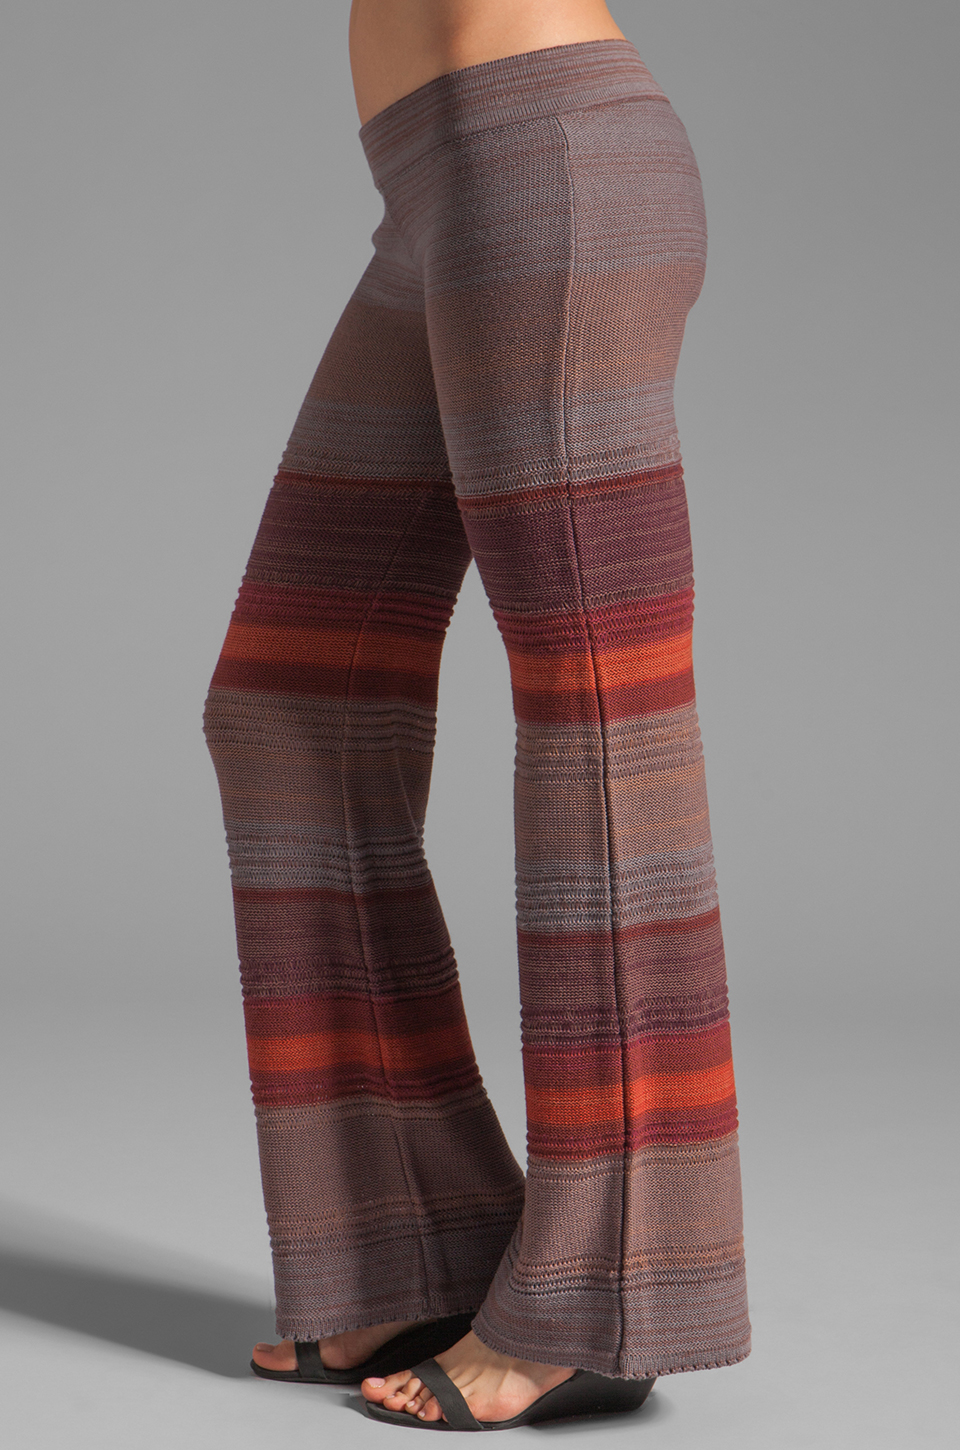 Goddis Huntley Pant in Warm Sienna